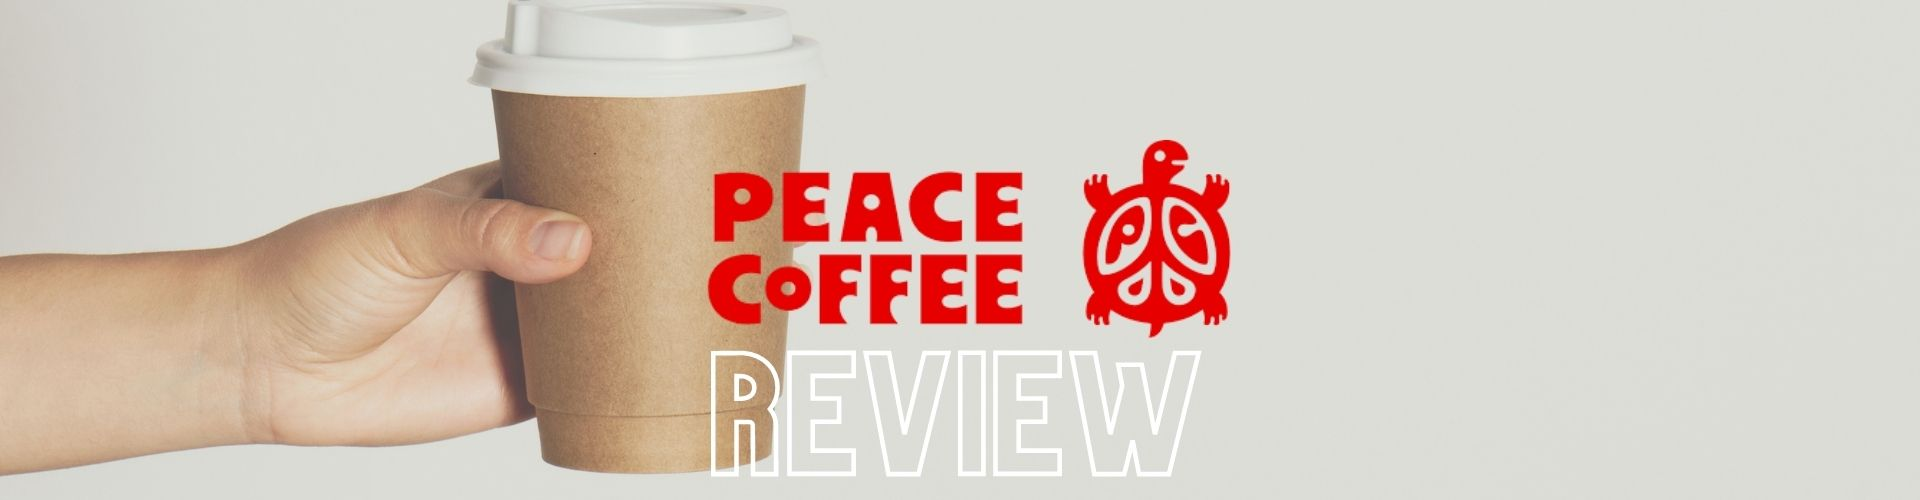 peace coffee banner image